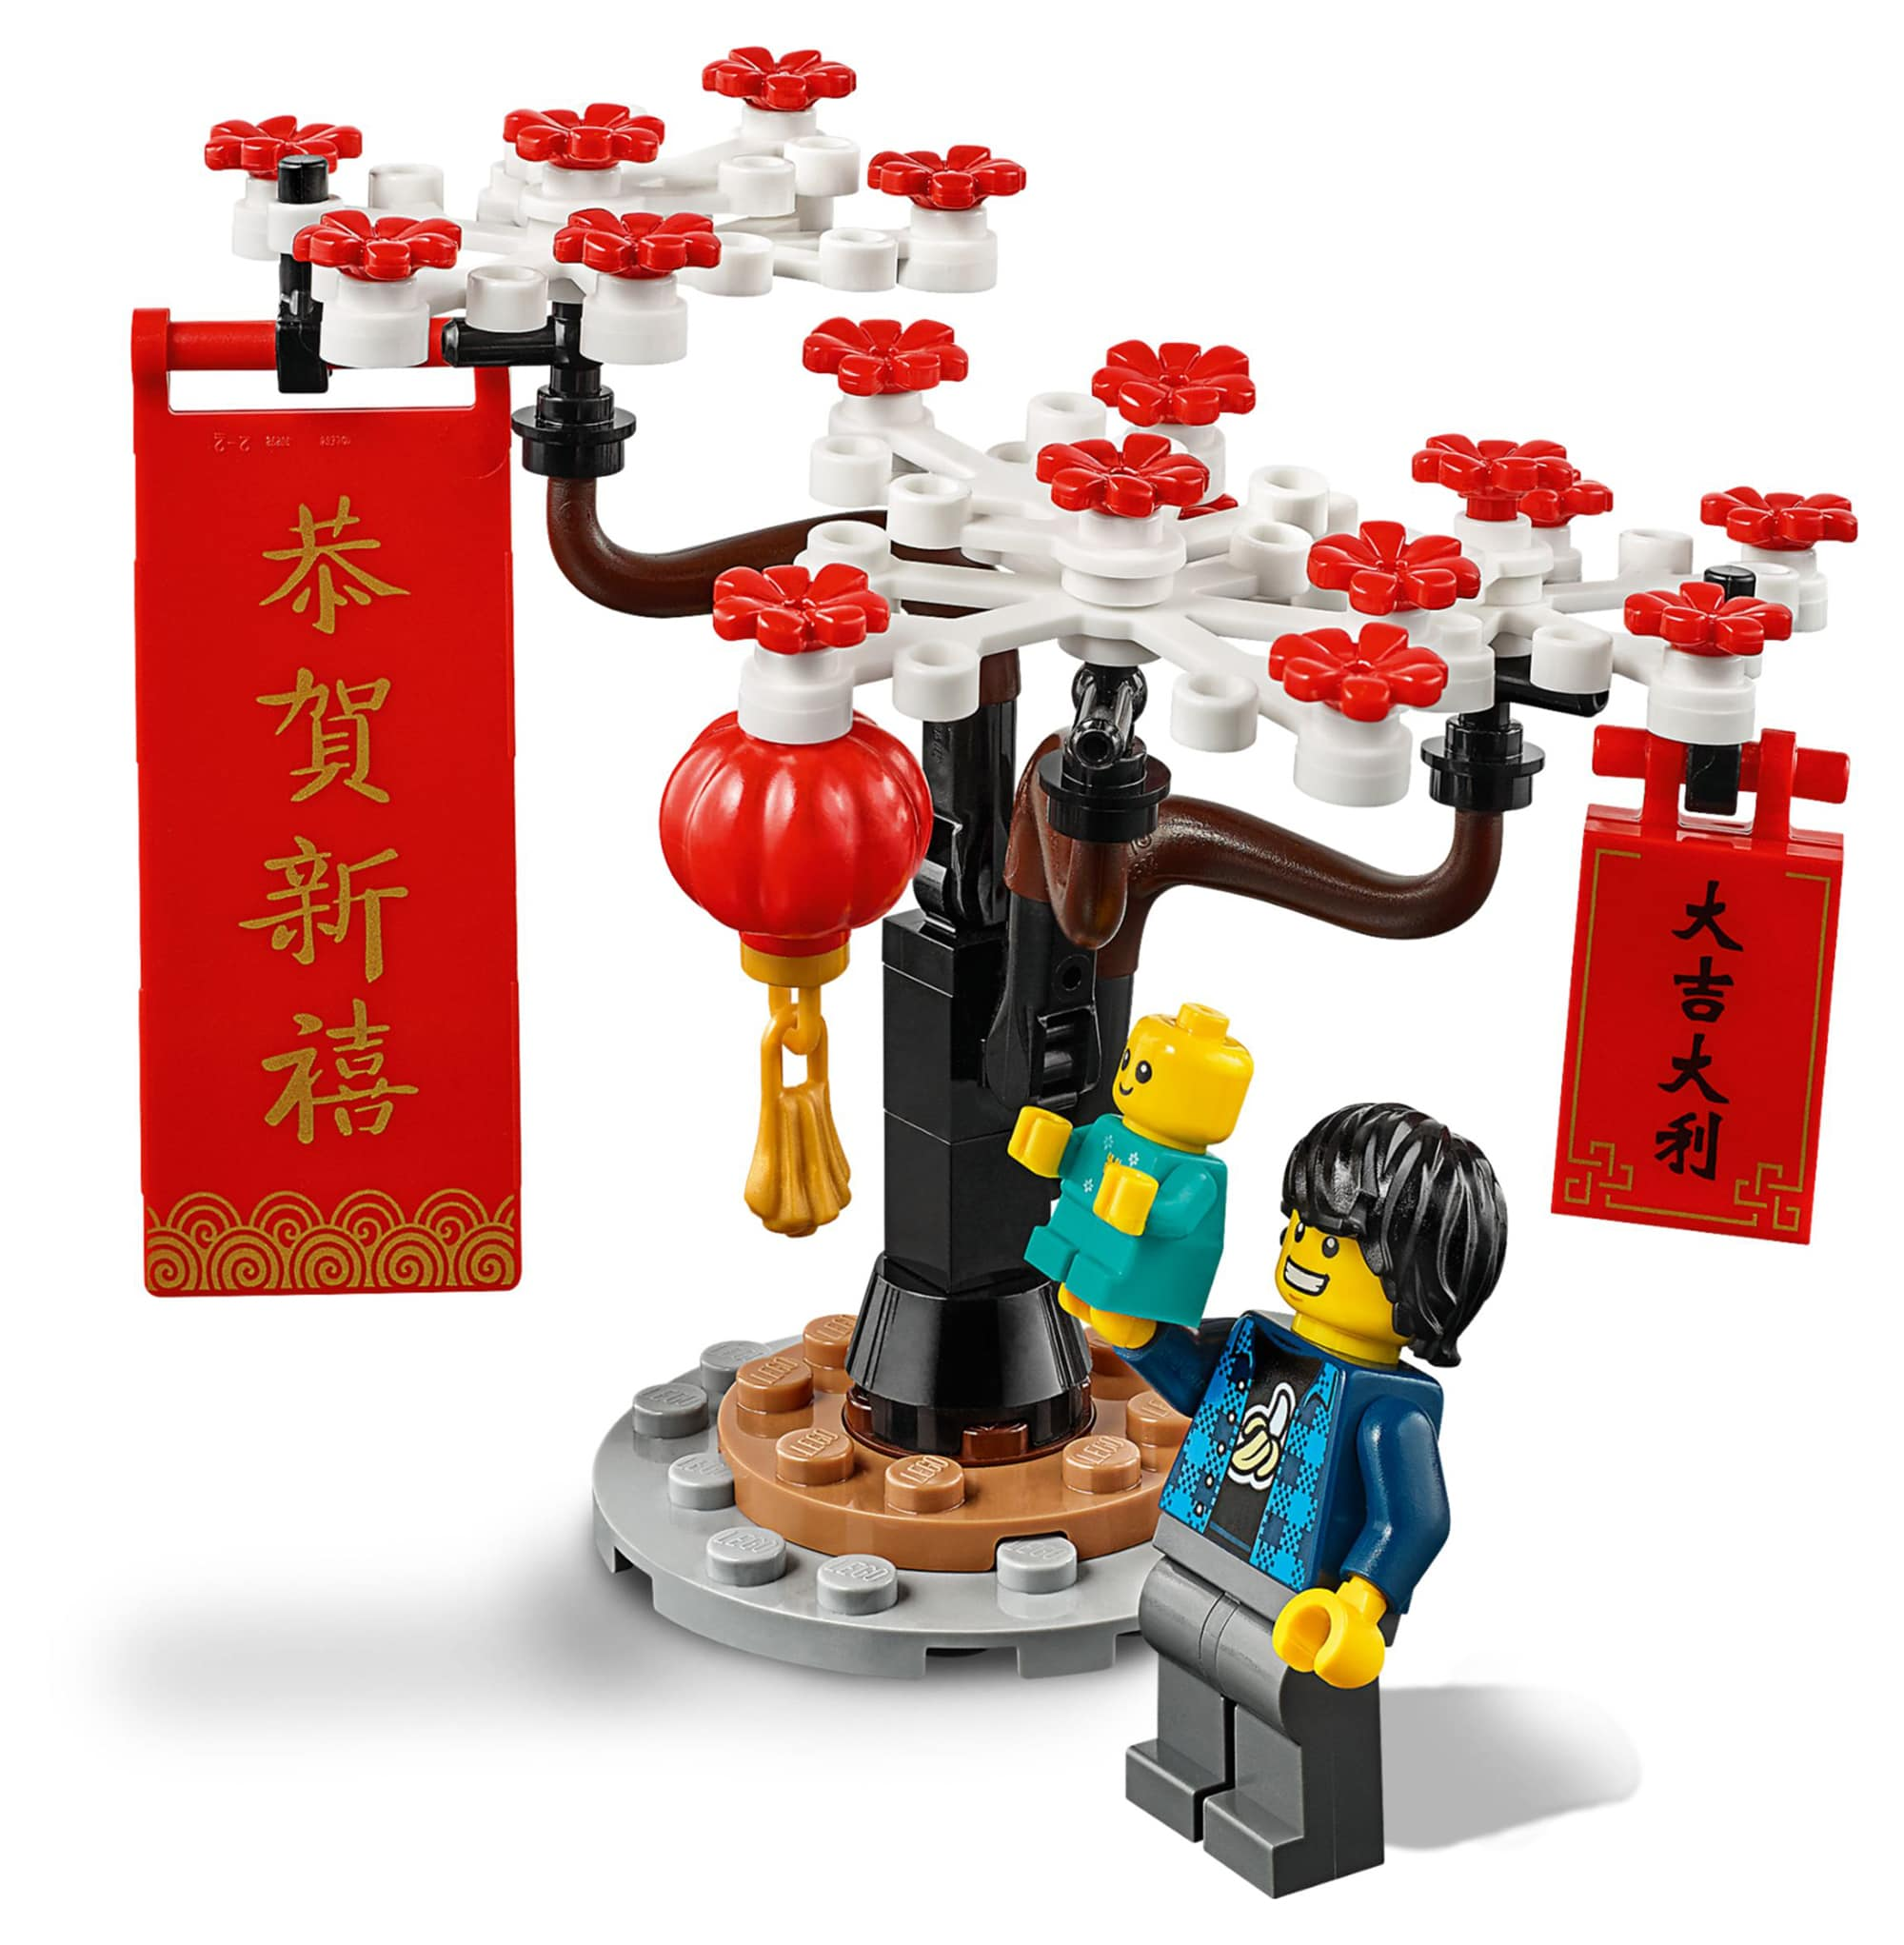 LEGO 80105 Temple Fair details